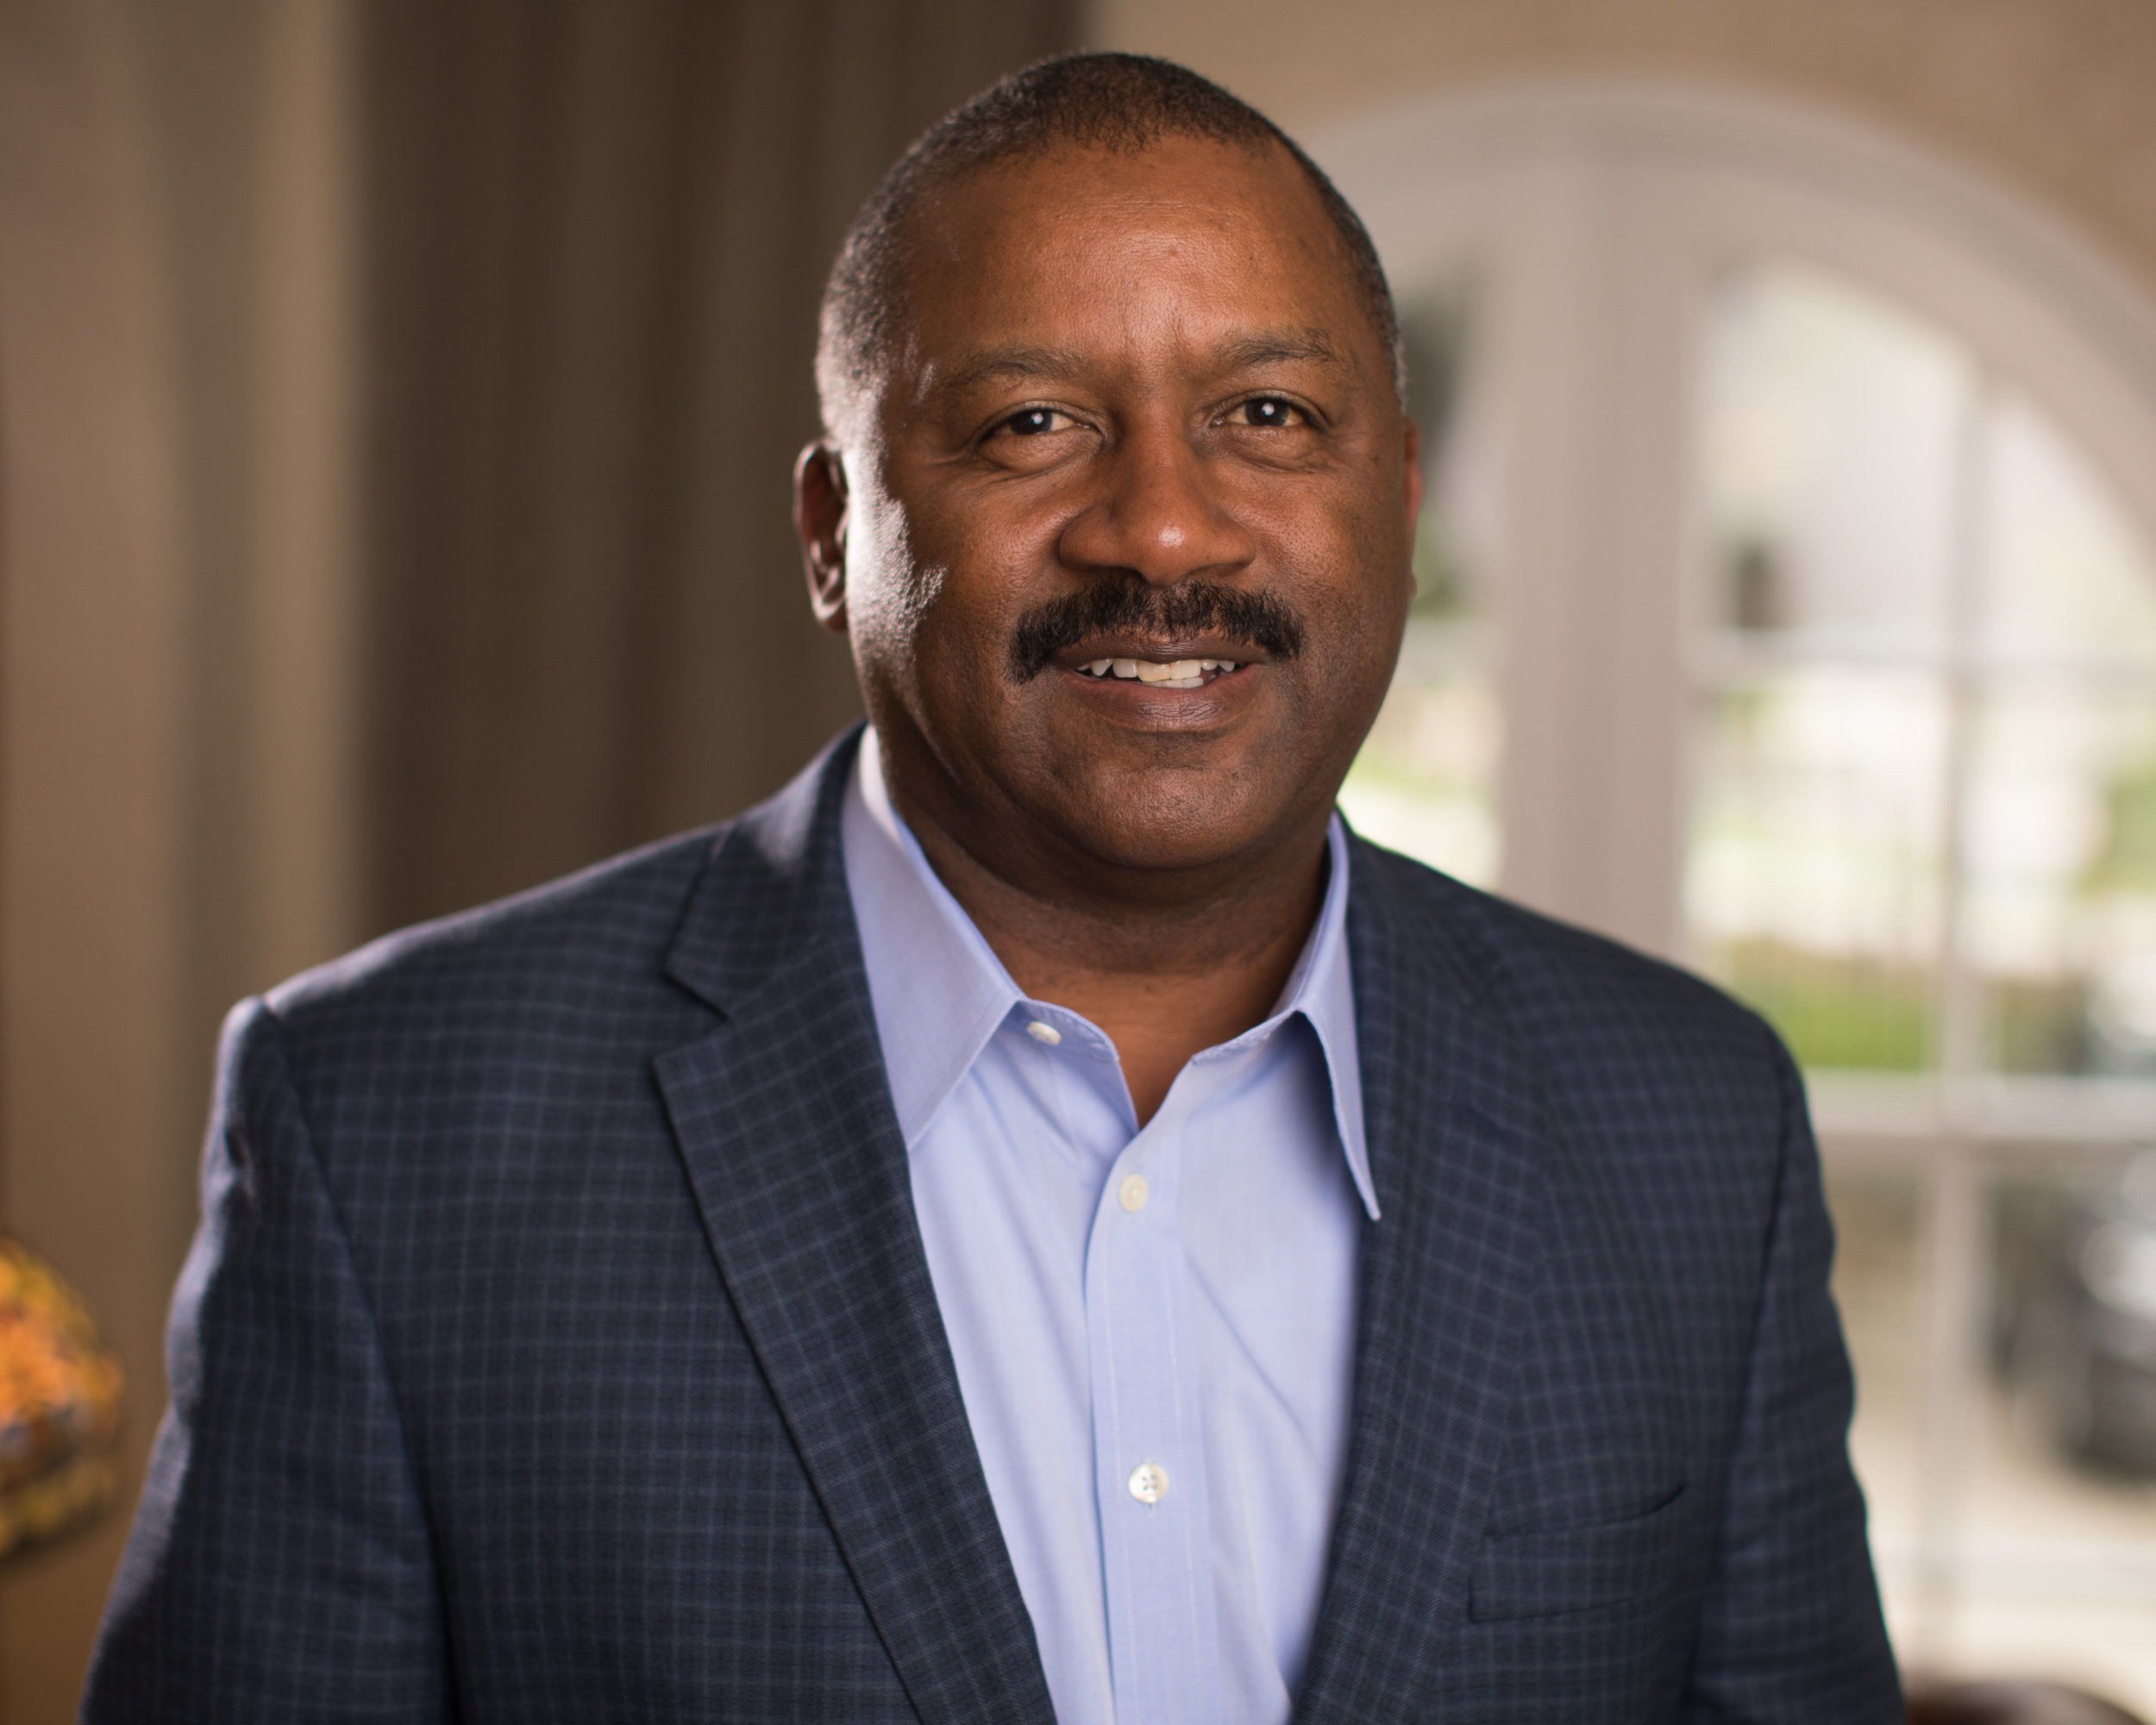 Terry Prather, Chief Operating Officer